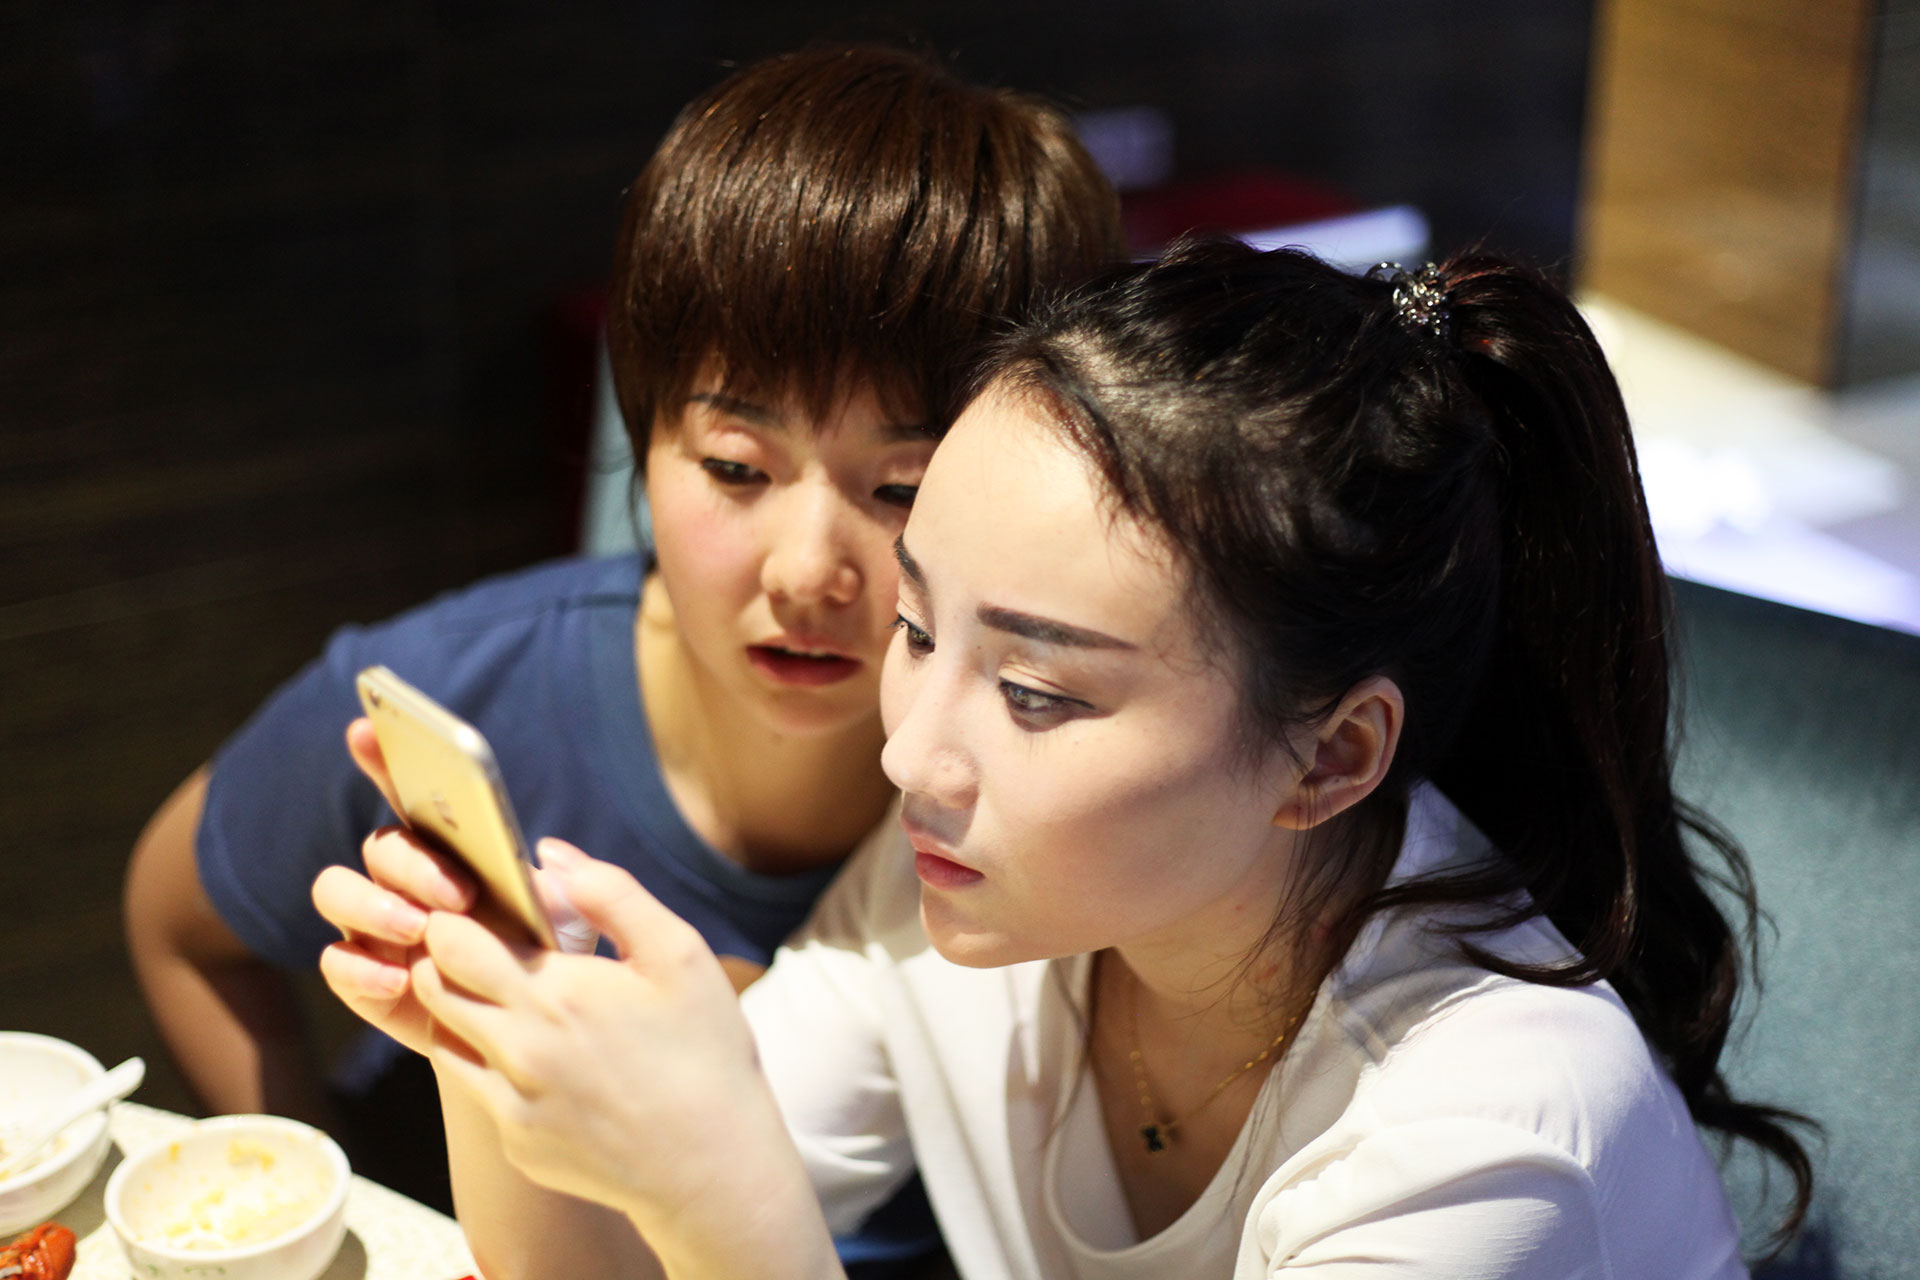 Shen Man and Dabao looking at live streaming on a phone, in People's Republic of Desire